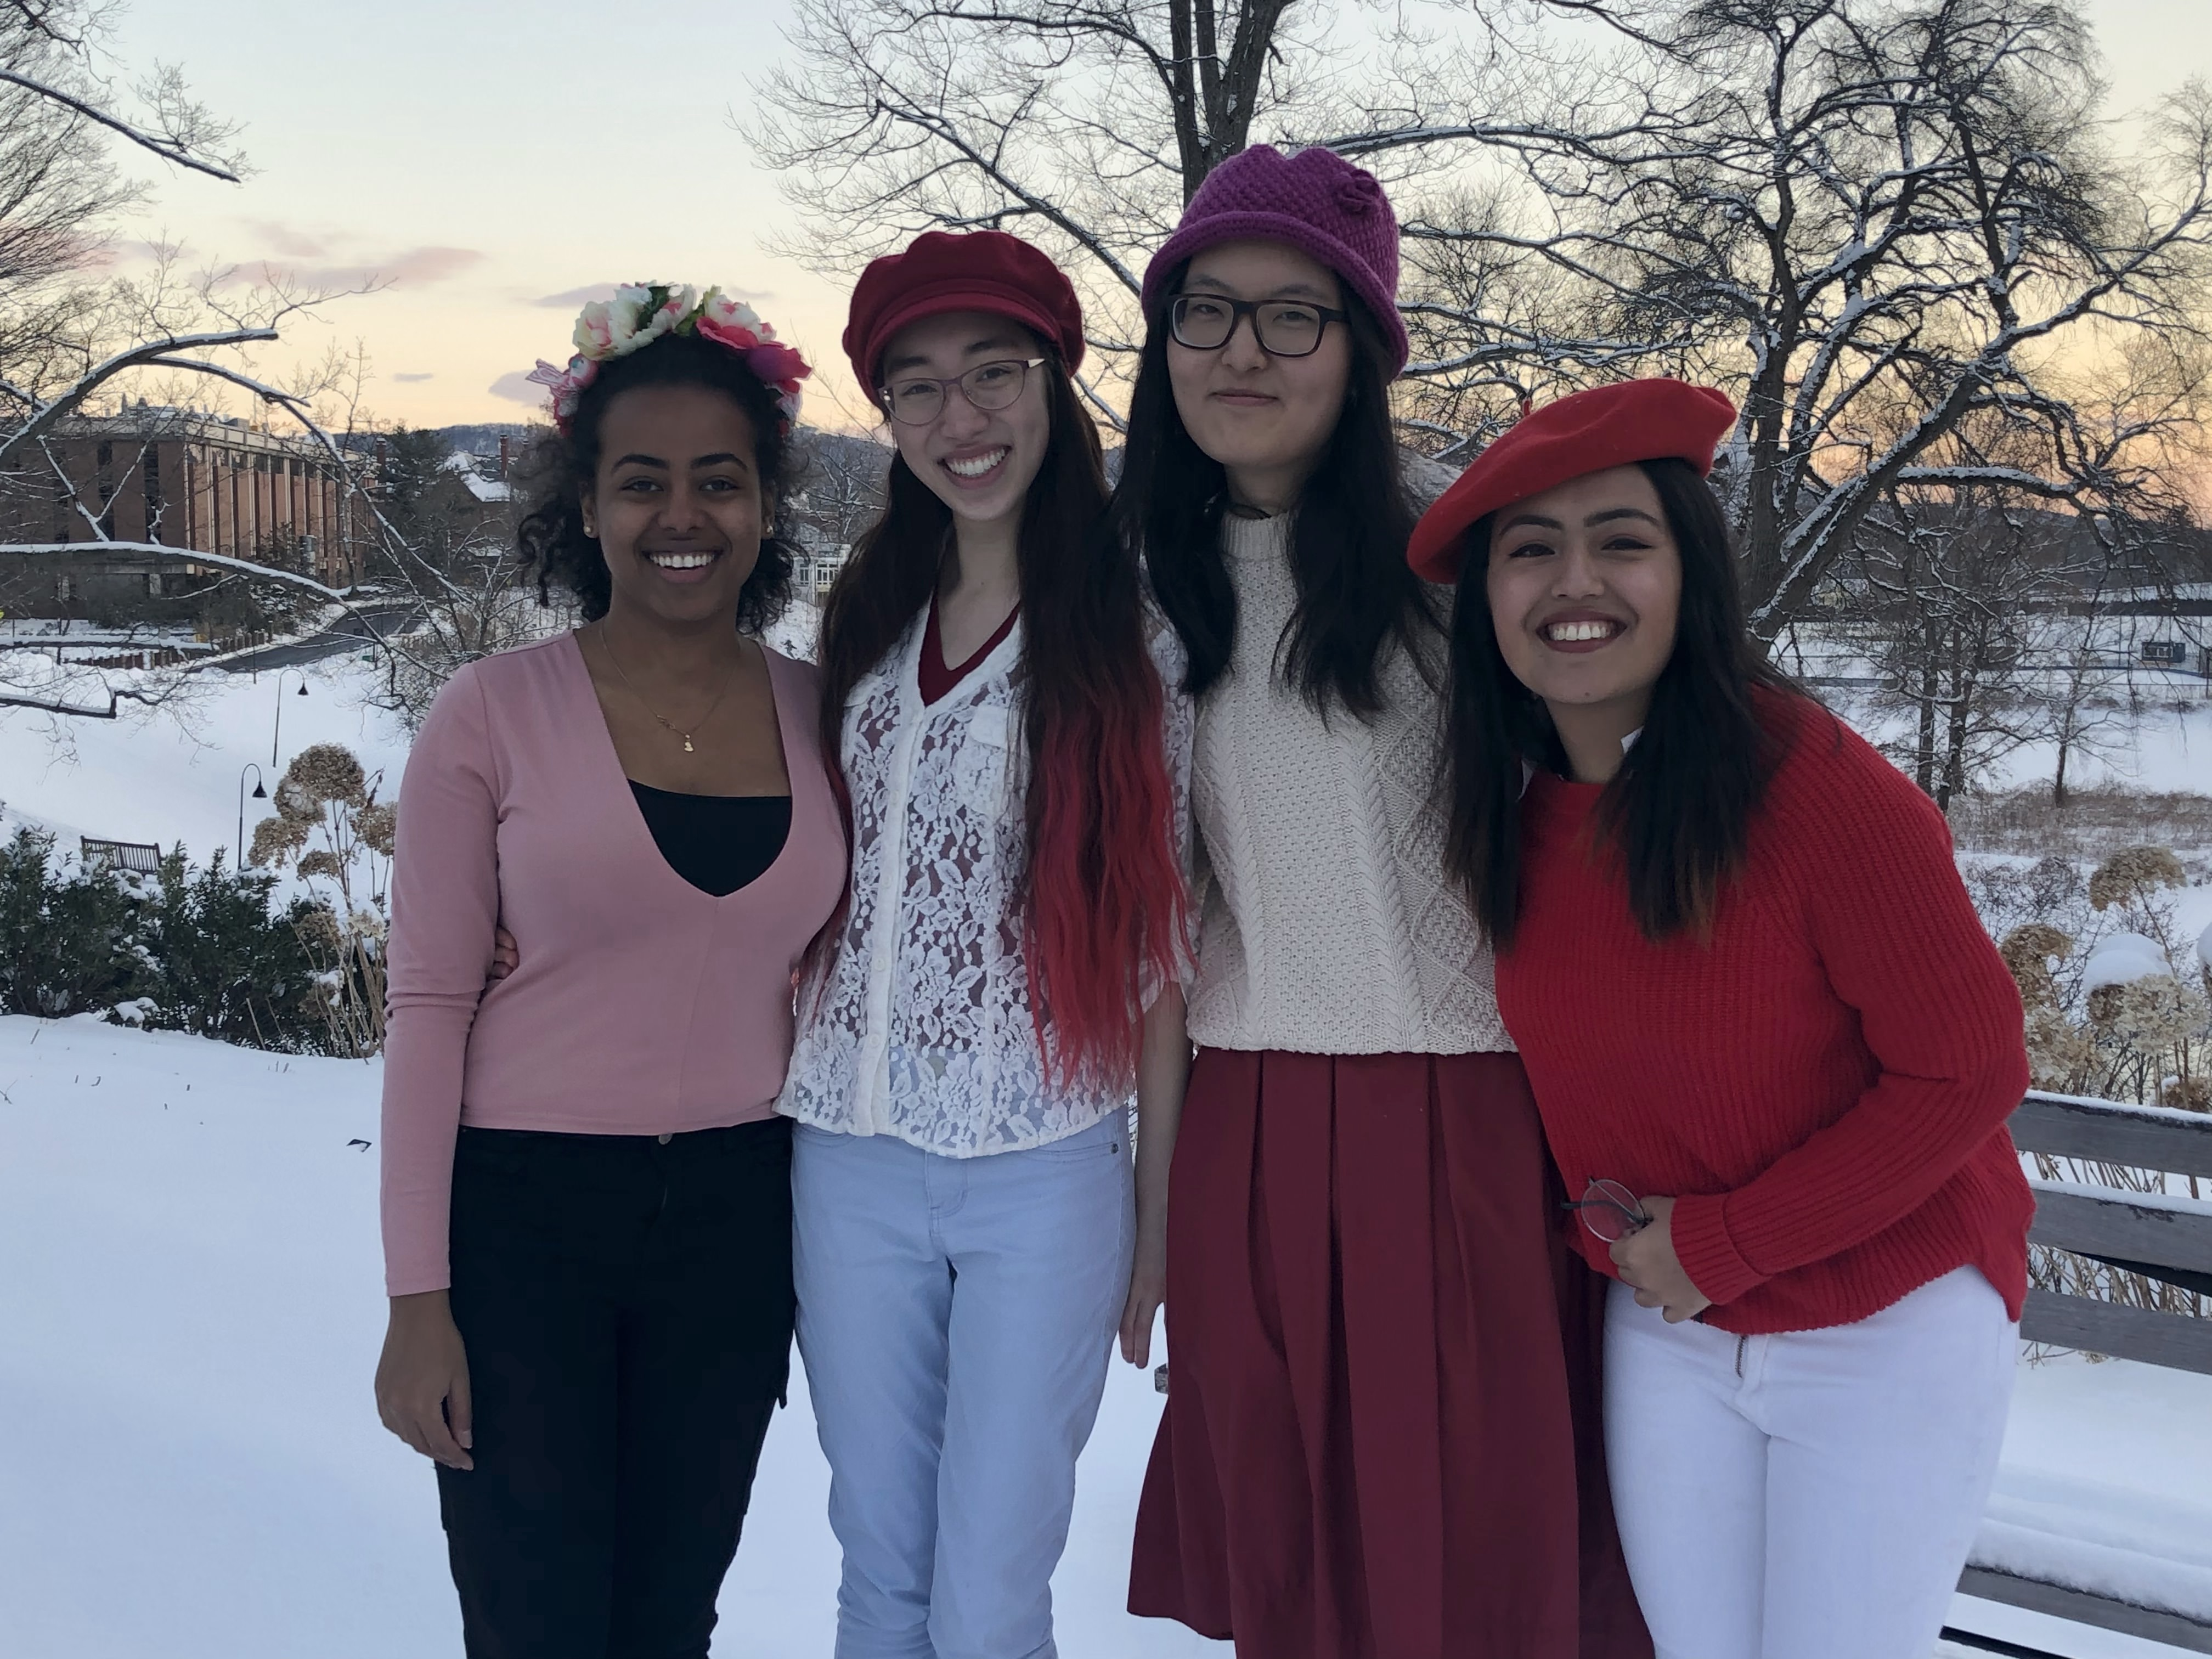 From left to right: University Innovation Fellows - Beth Yigzaw, Isabelle Hodge, Emma Sui, and Asmita Gautam.